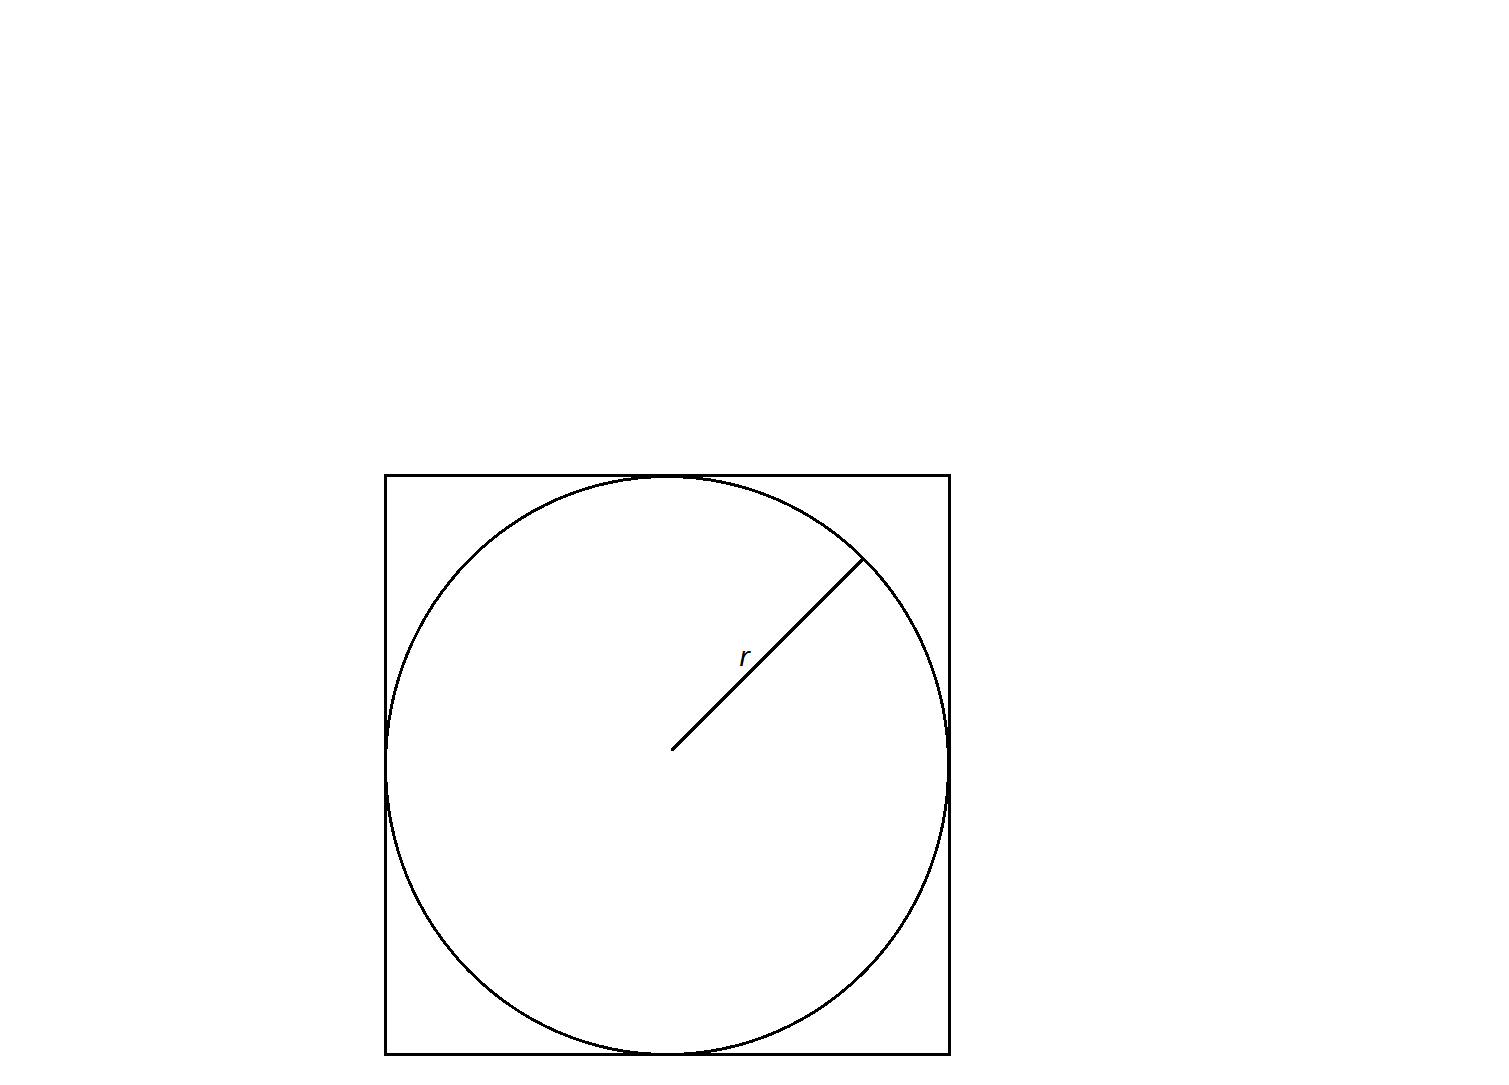 Cylinder_with_a_sphere